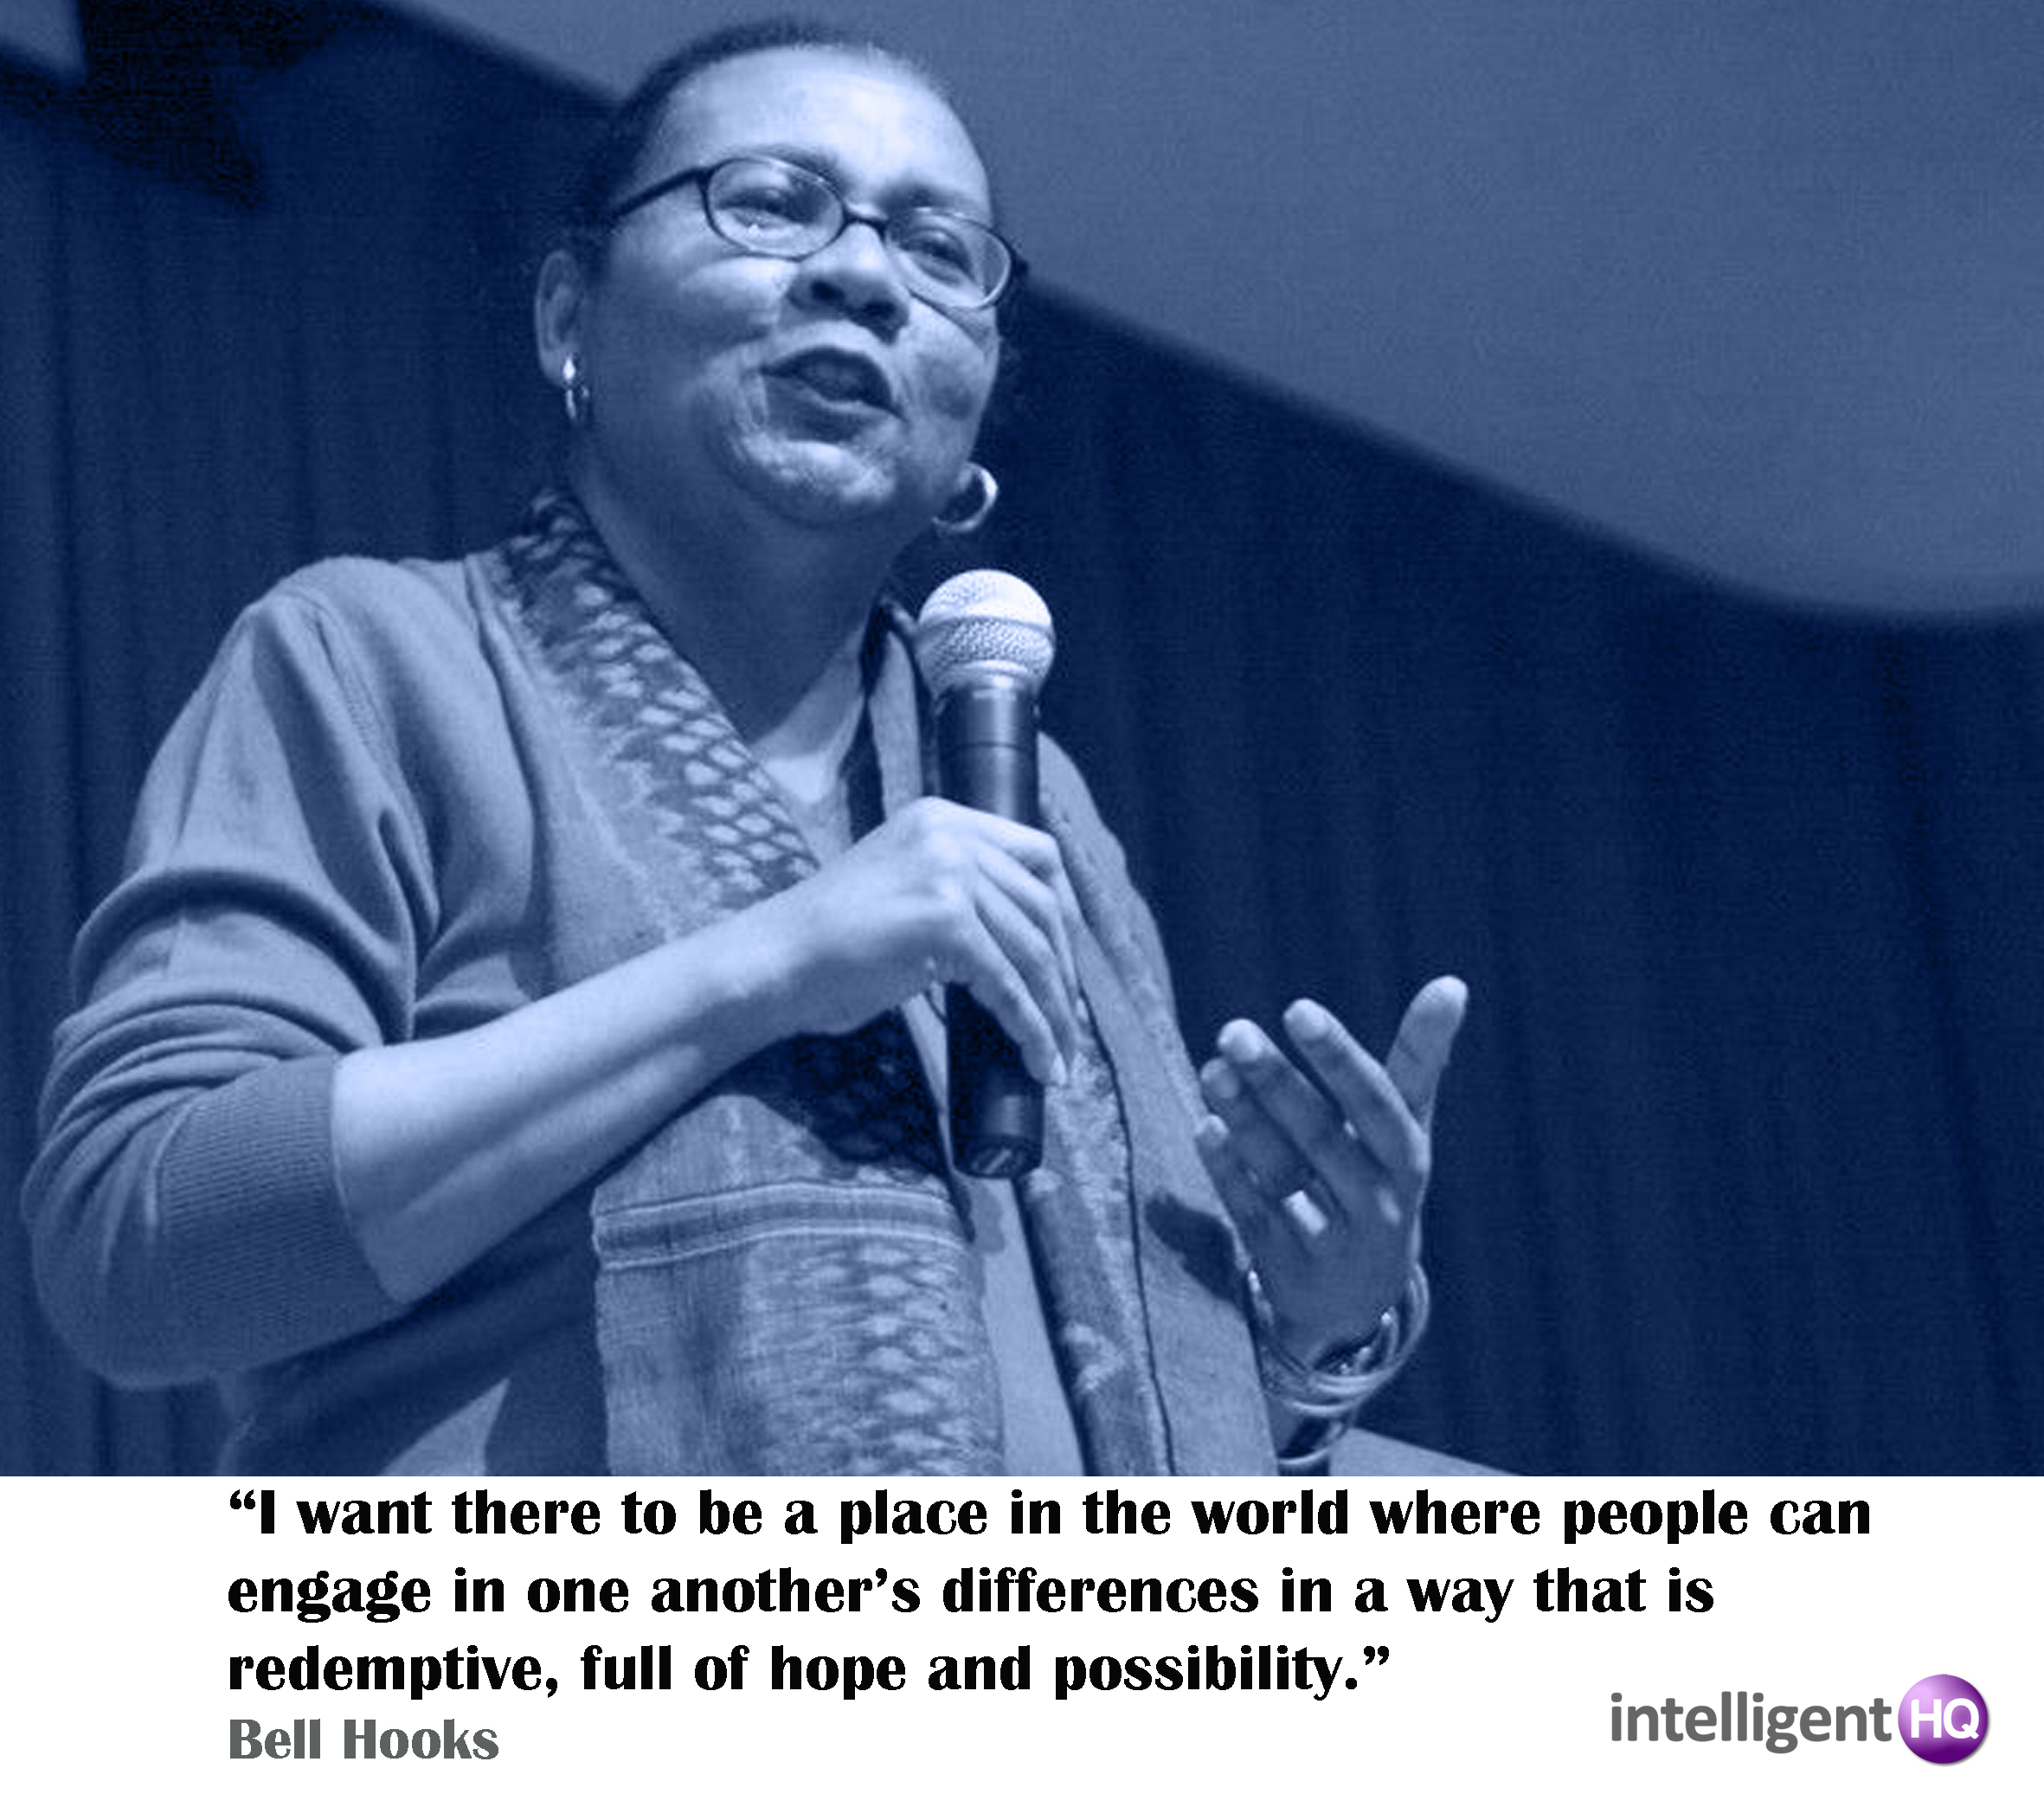 bell hooks essay wise quotes by great women intelligenthq bell hooks